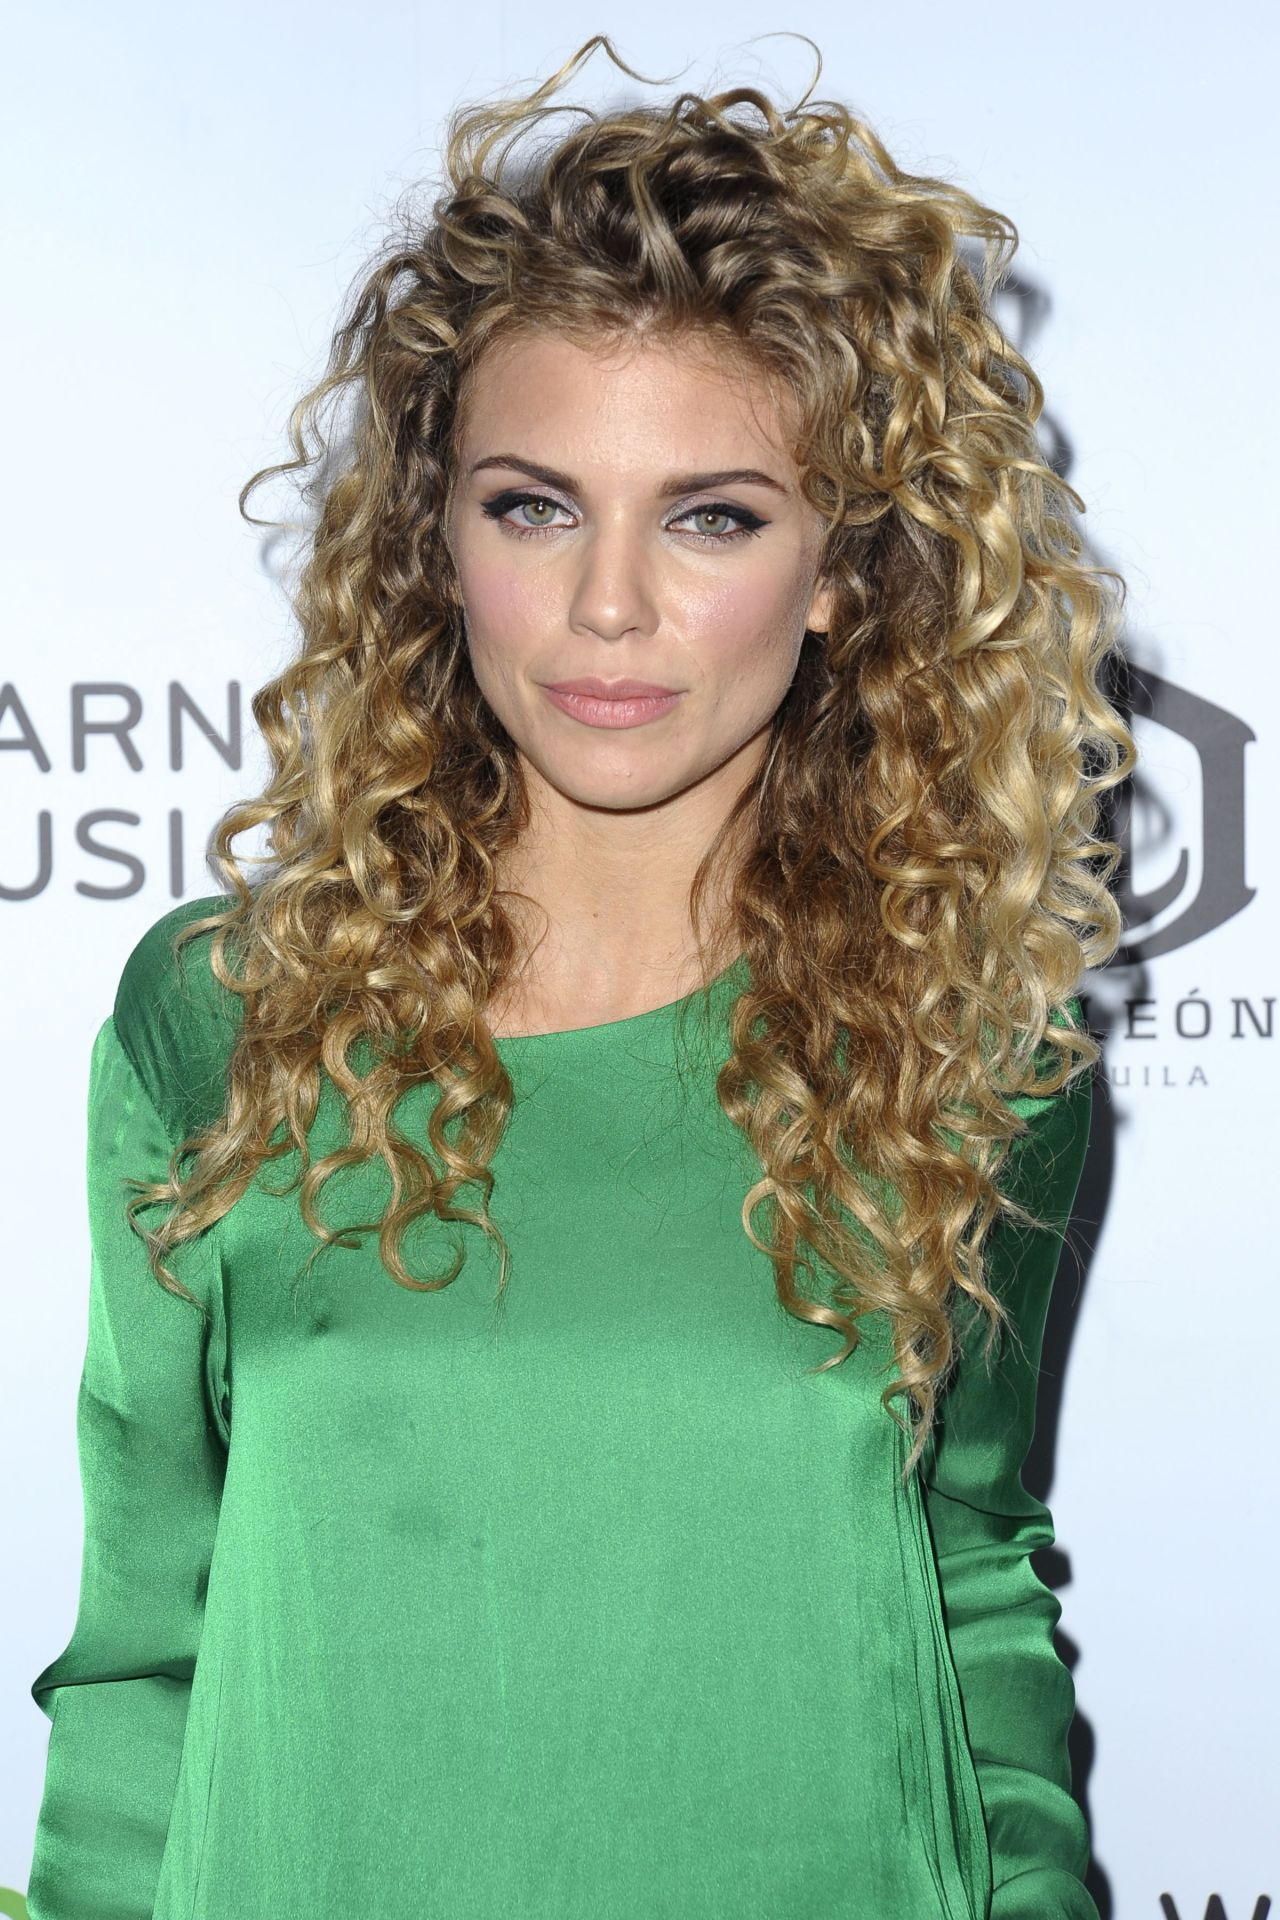 Annalynne Mccord 2015 Celebrity Photos A Warner Music